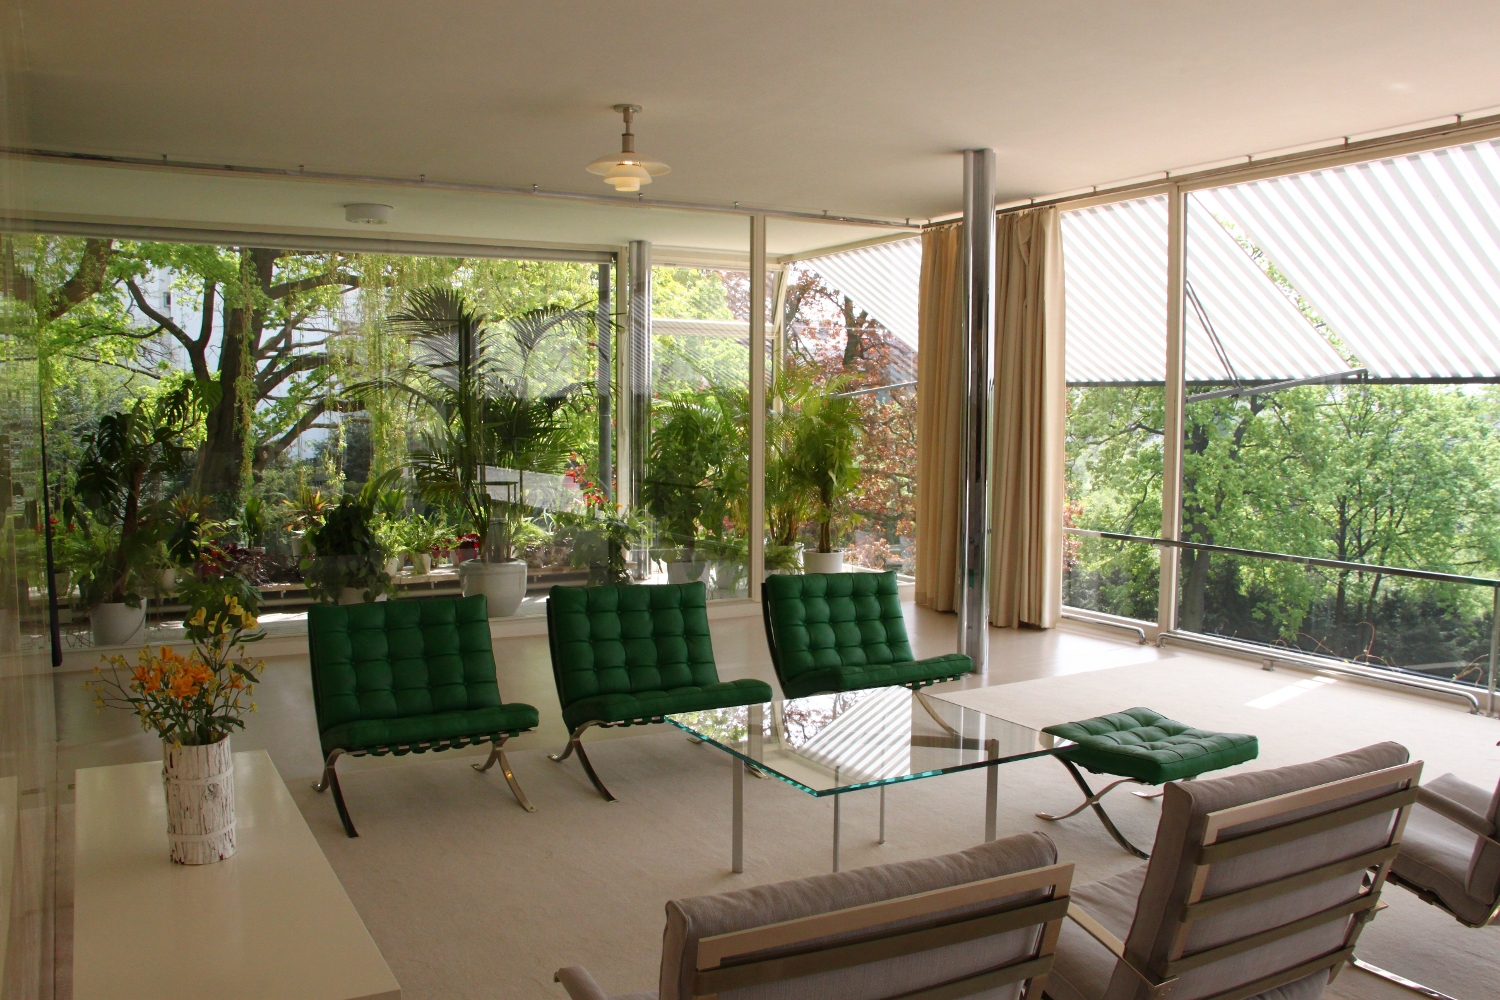 Villa tugendhat living room villa tugendhat living room to the